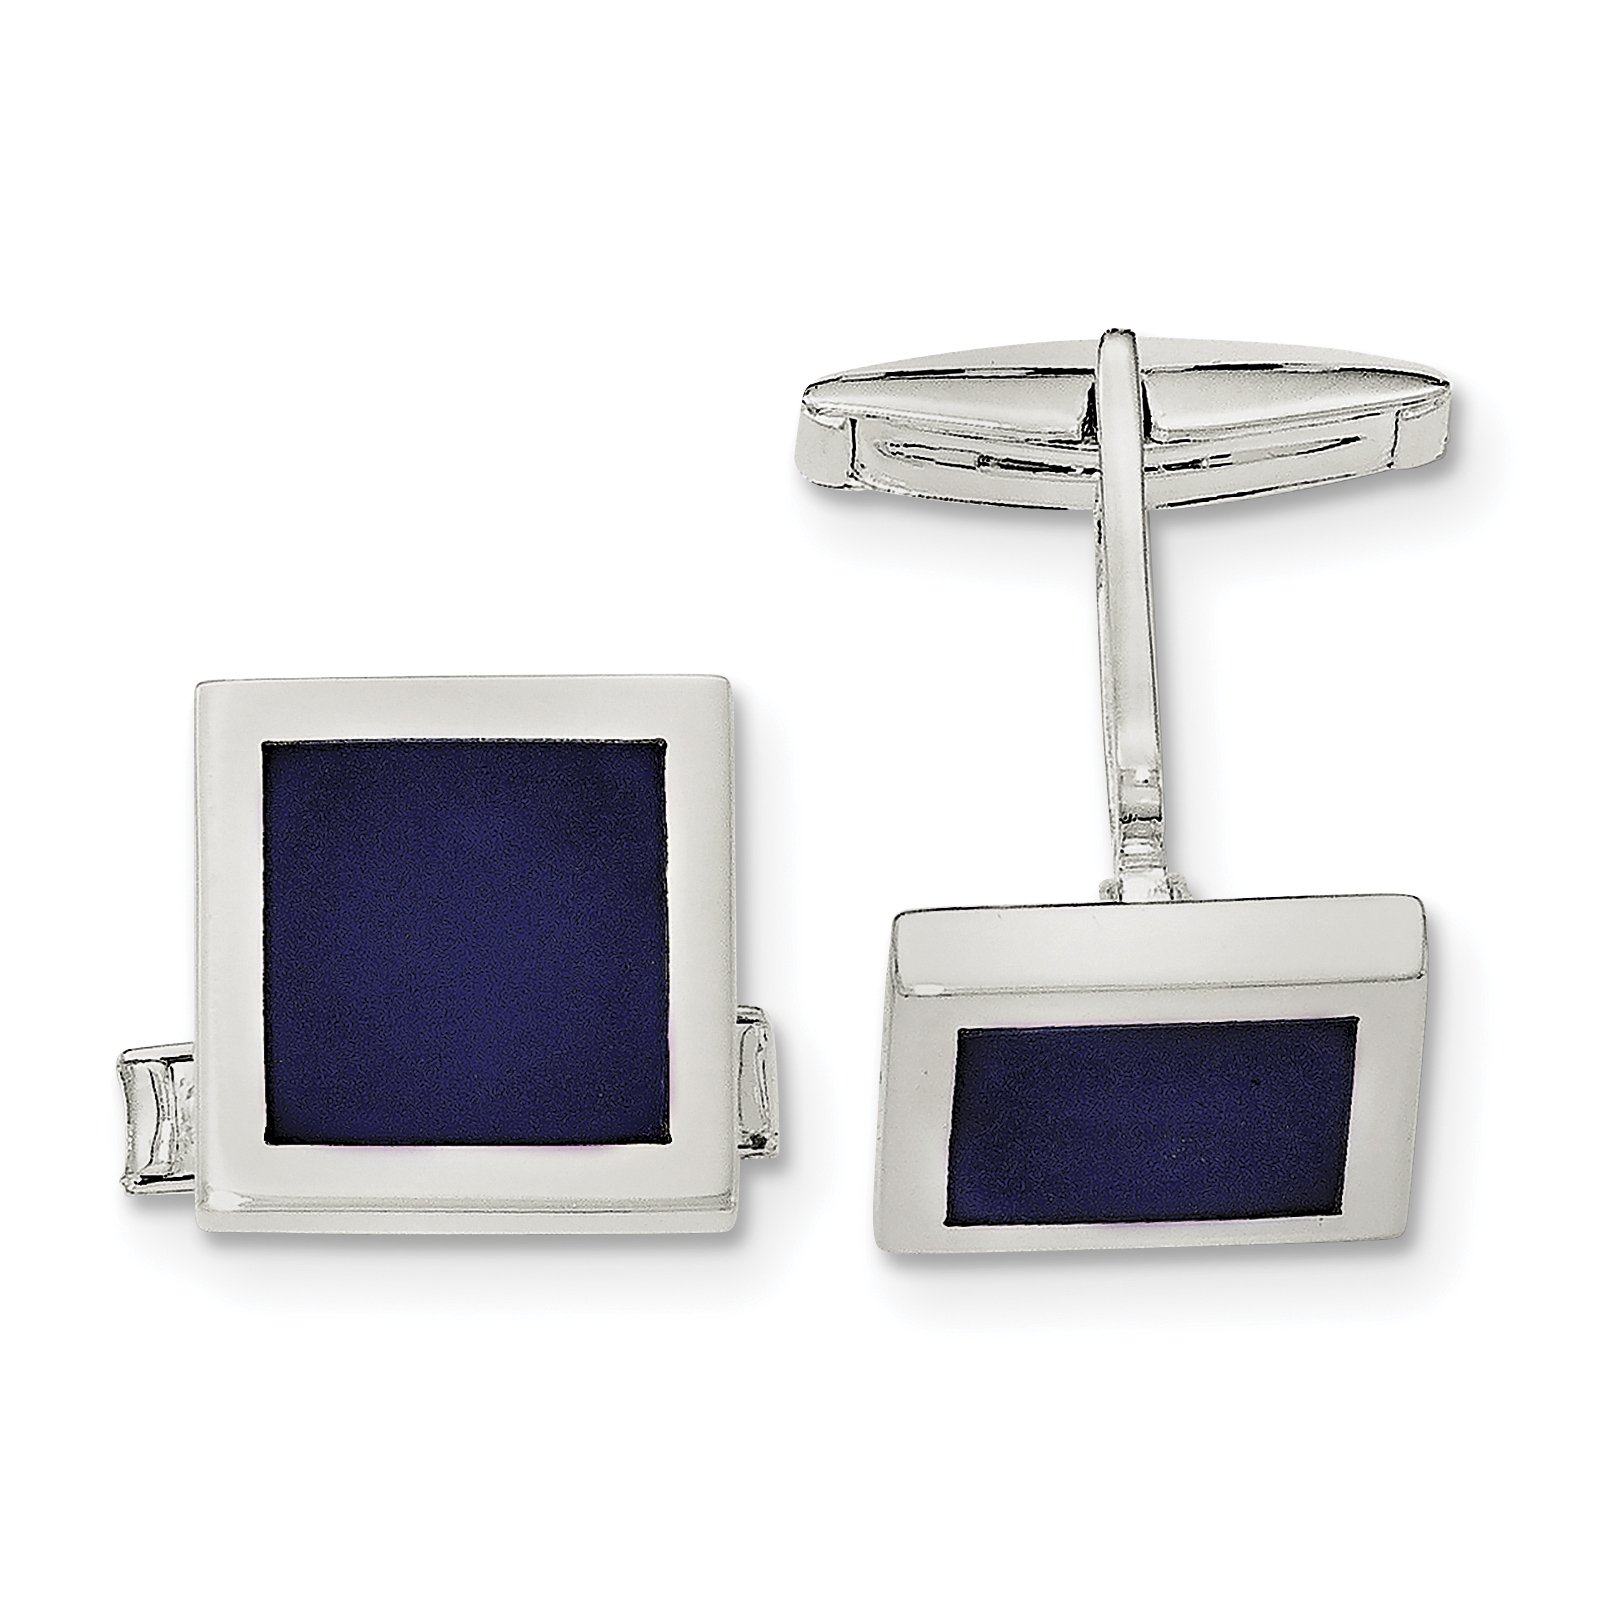 ICE CARATS 925 Sterling Silver Lapis Cuff Links Mens Cufflinks Link Fine Jewelry Dad Mens Gift Set by ICE CARATS (Image #1)